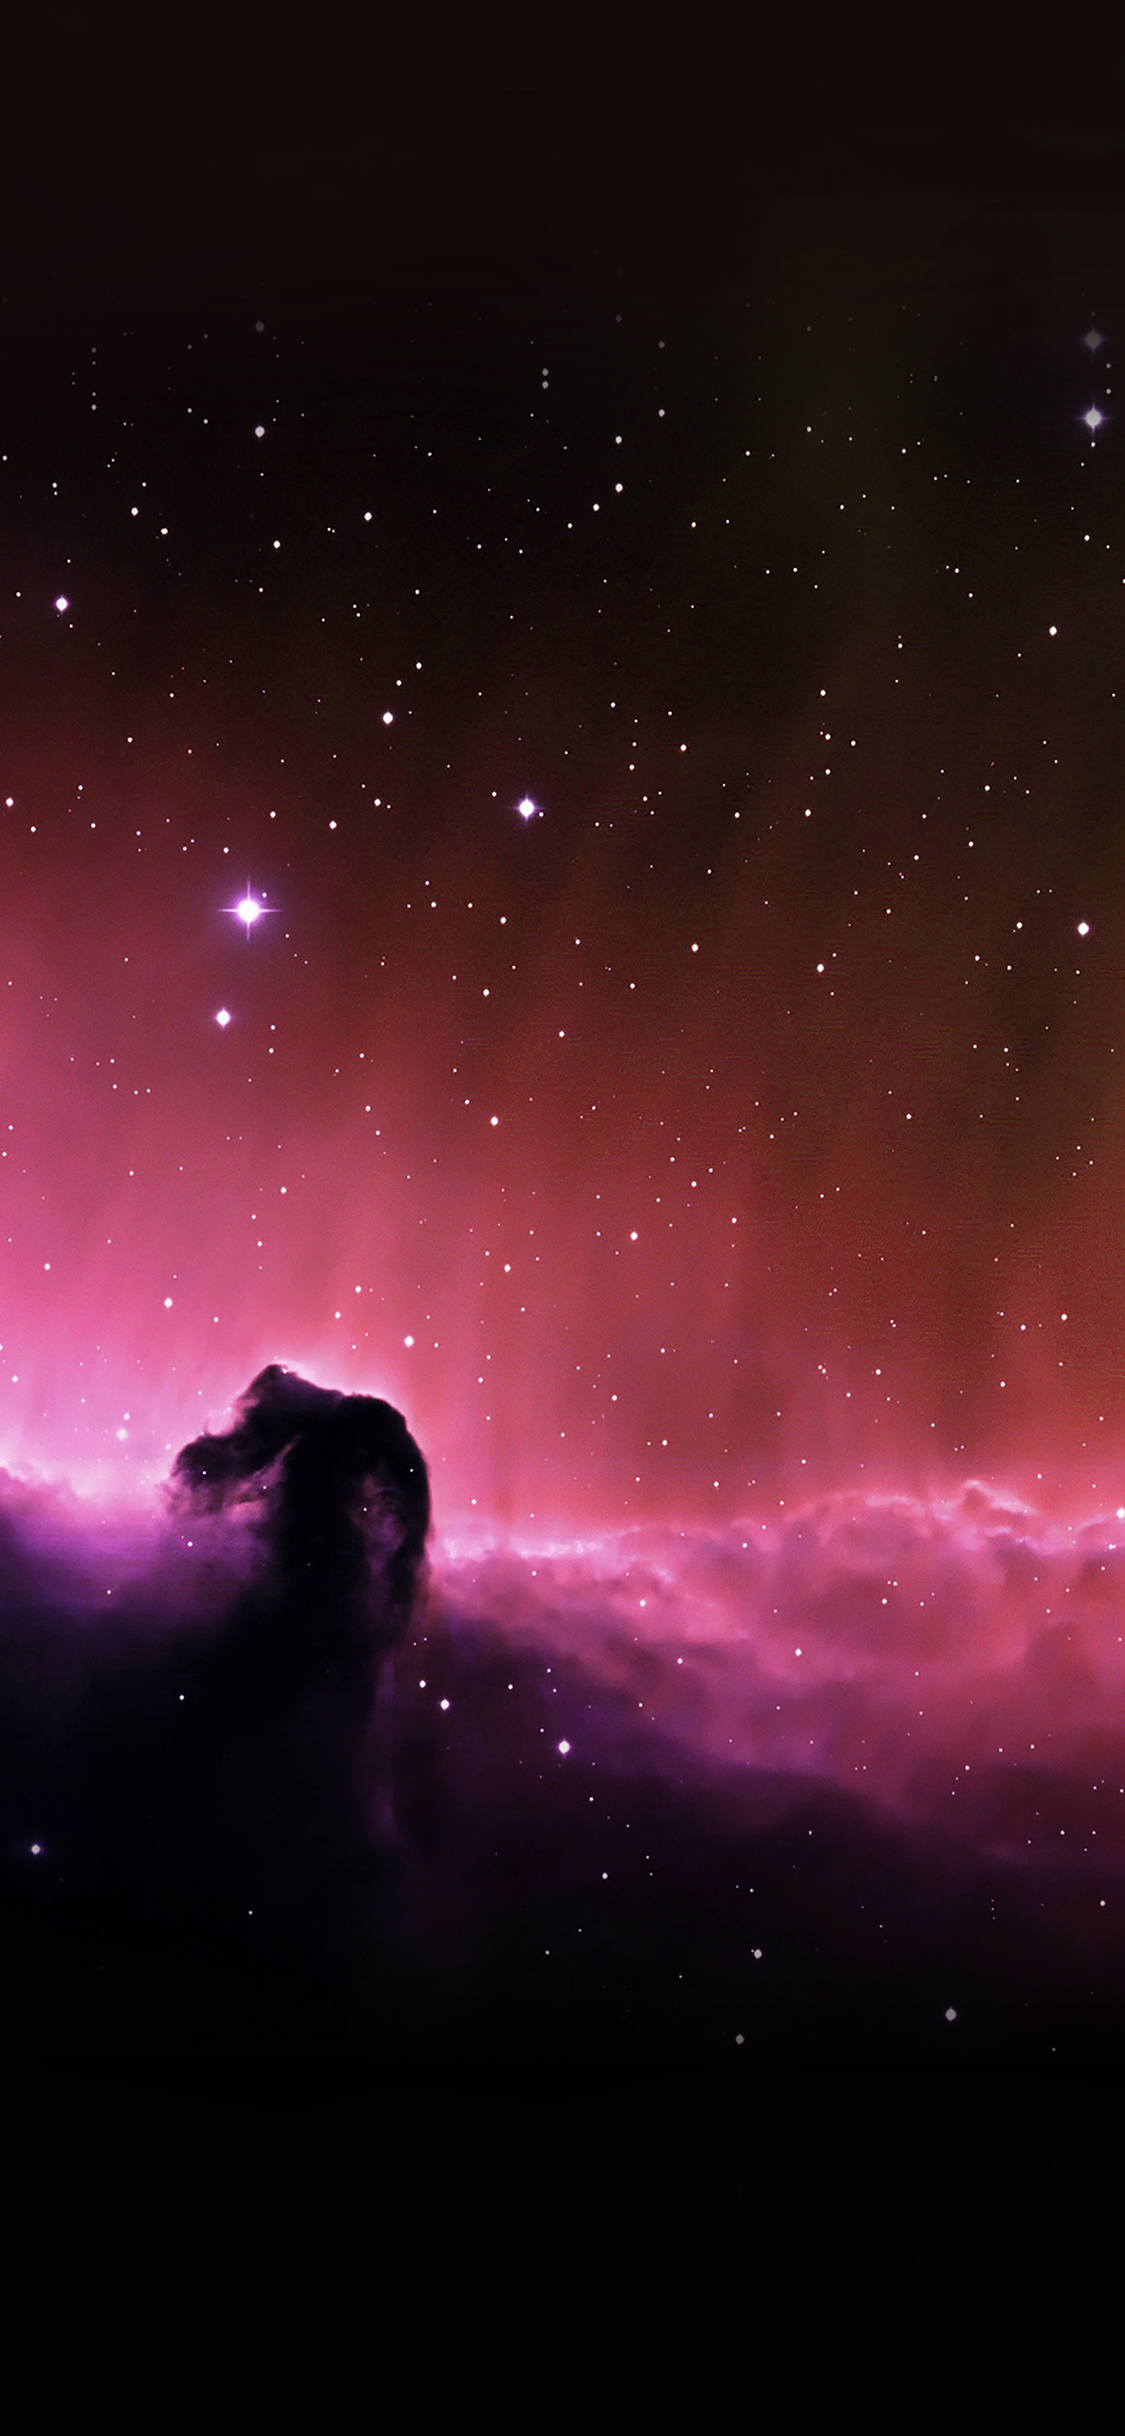 iPhoneXpapers.com-Apple-iPhone-wallpaper-mj10-horse-head-nebula-sky-space-stars